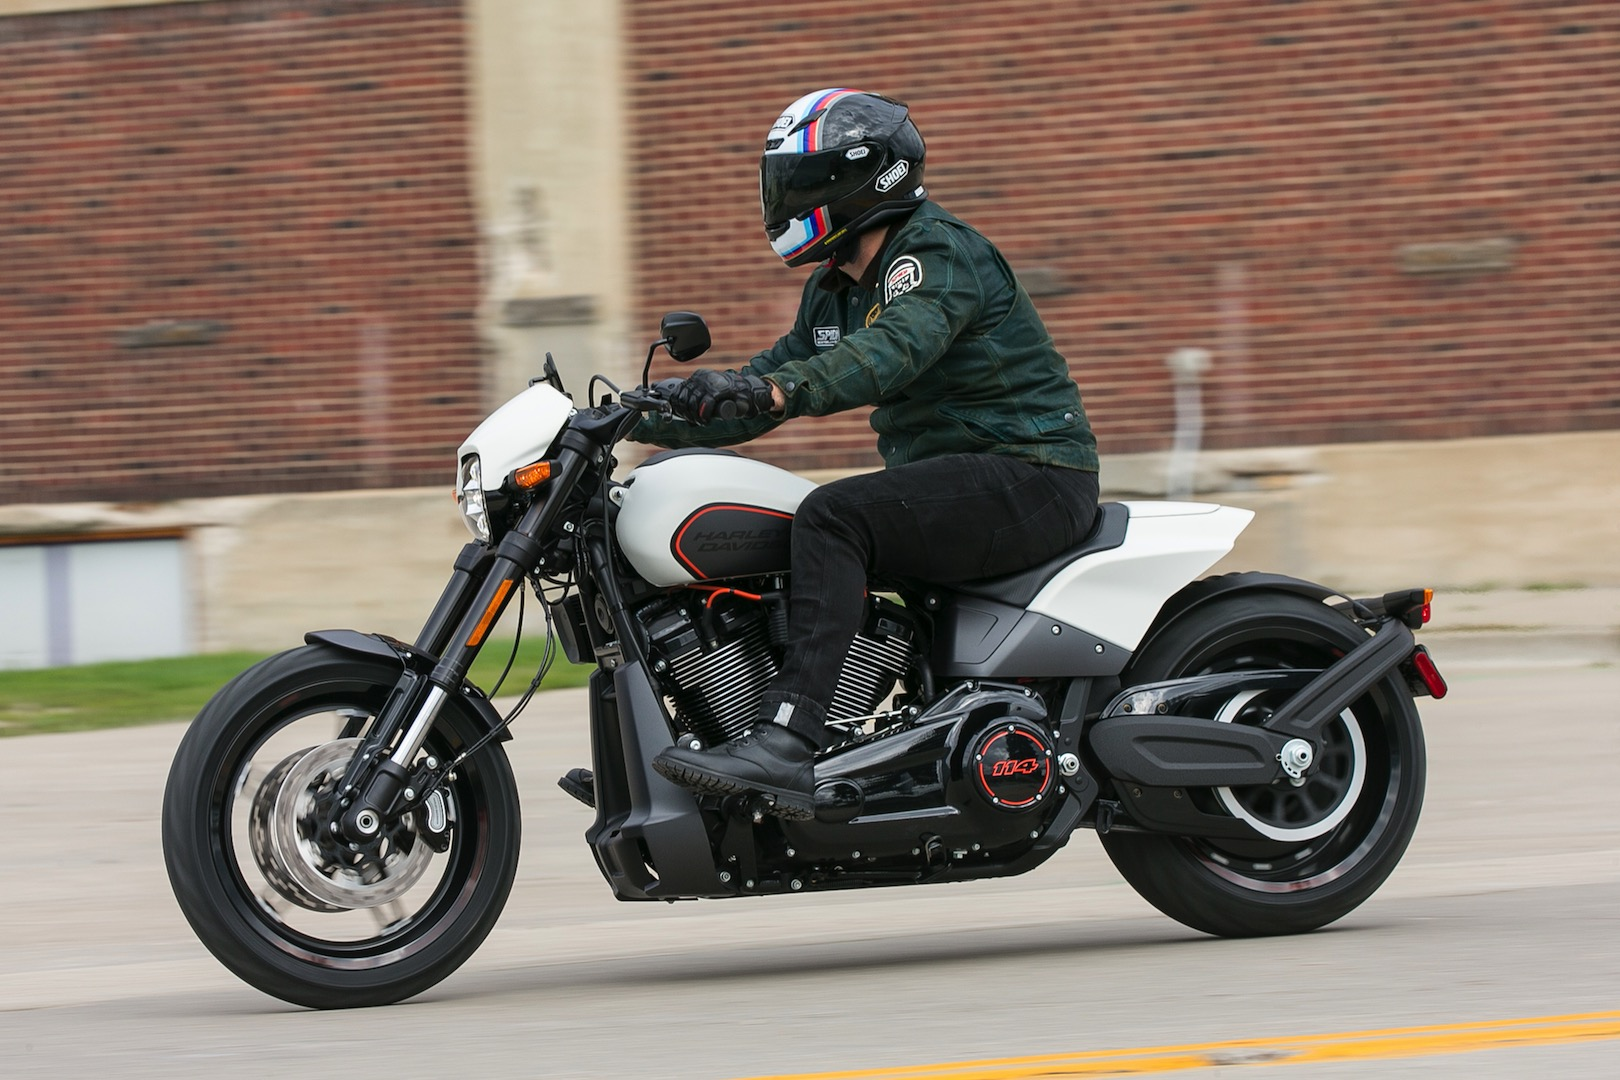 New Models 2019 Harley Davidson Fxdr 114 Review: 2019 Harley-Davidson FXDR 114 Review (14 Fast Facts